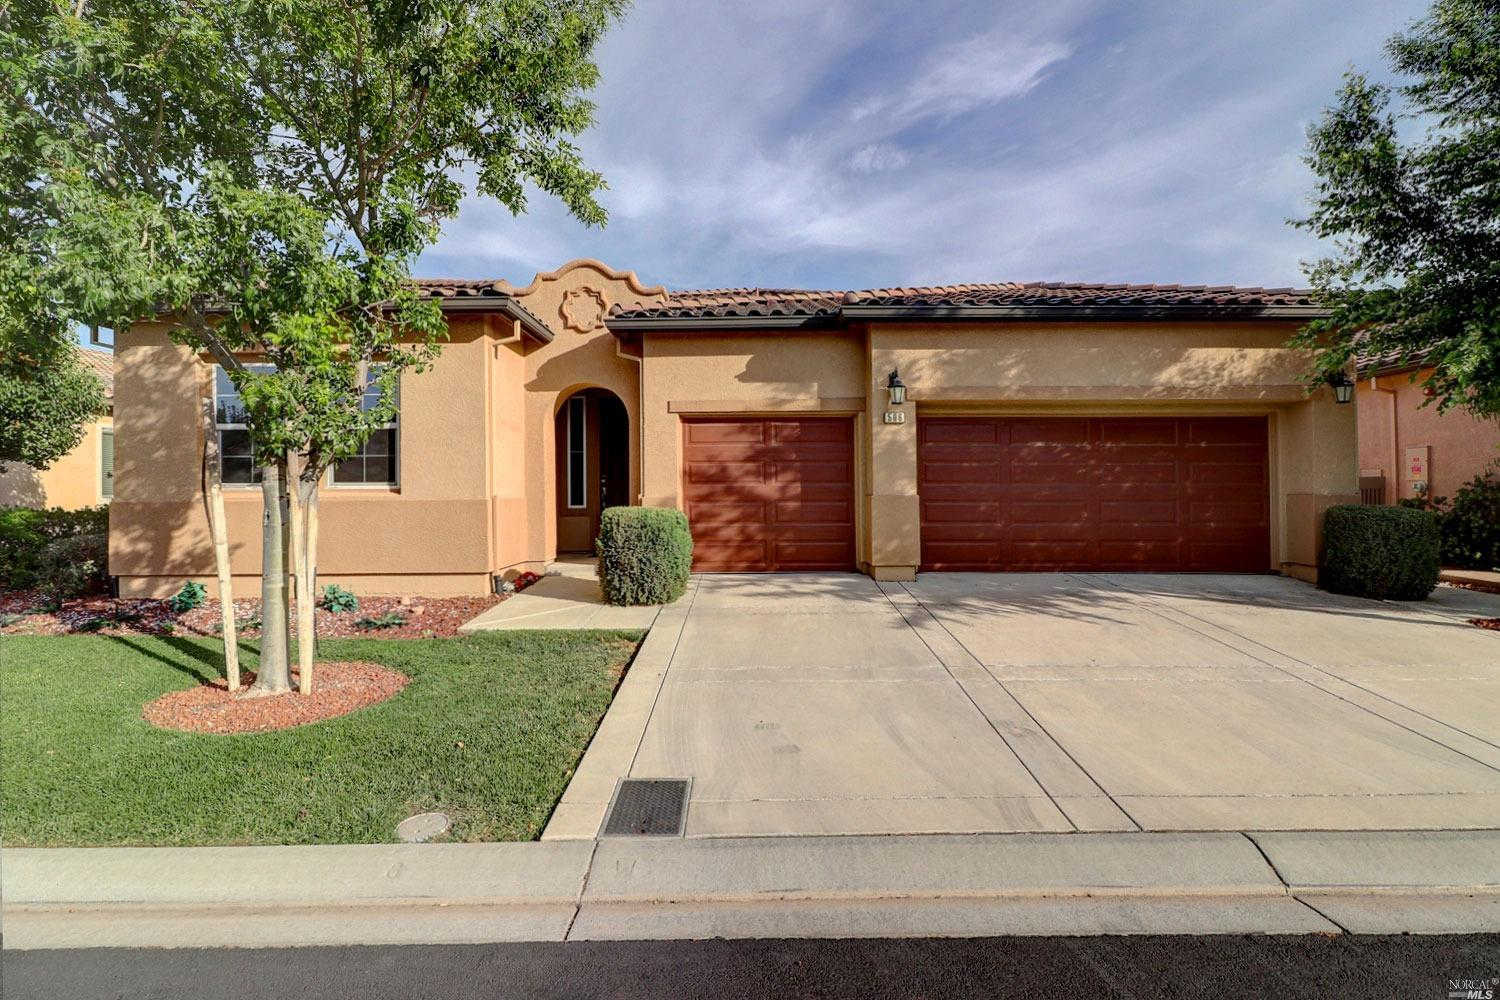 506 Three Rivers Way, Rio Vista, CA 94571 has an Open House on  Saturday, October 12, 2019 1:30 PM to 4:00 PM